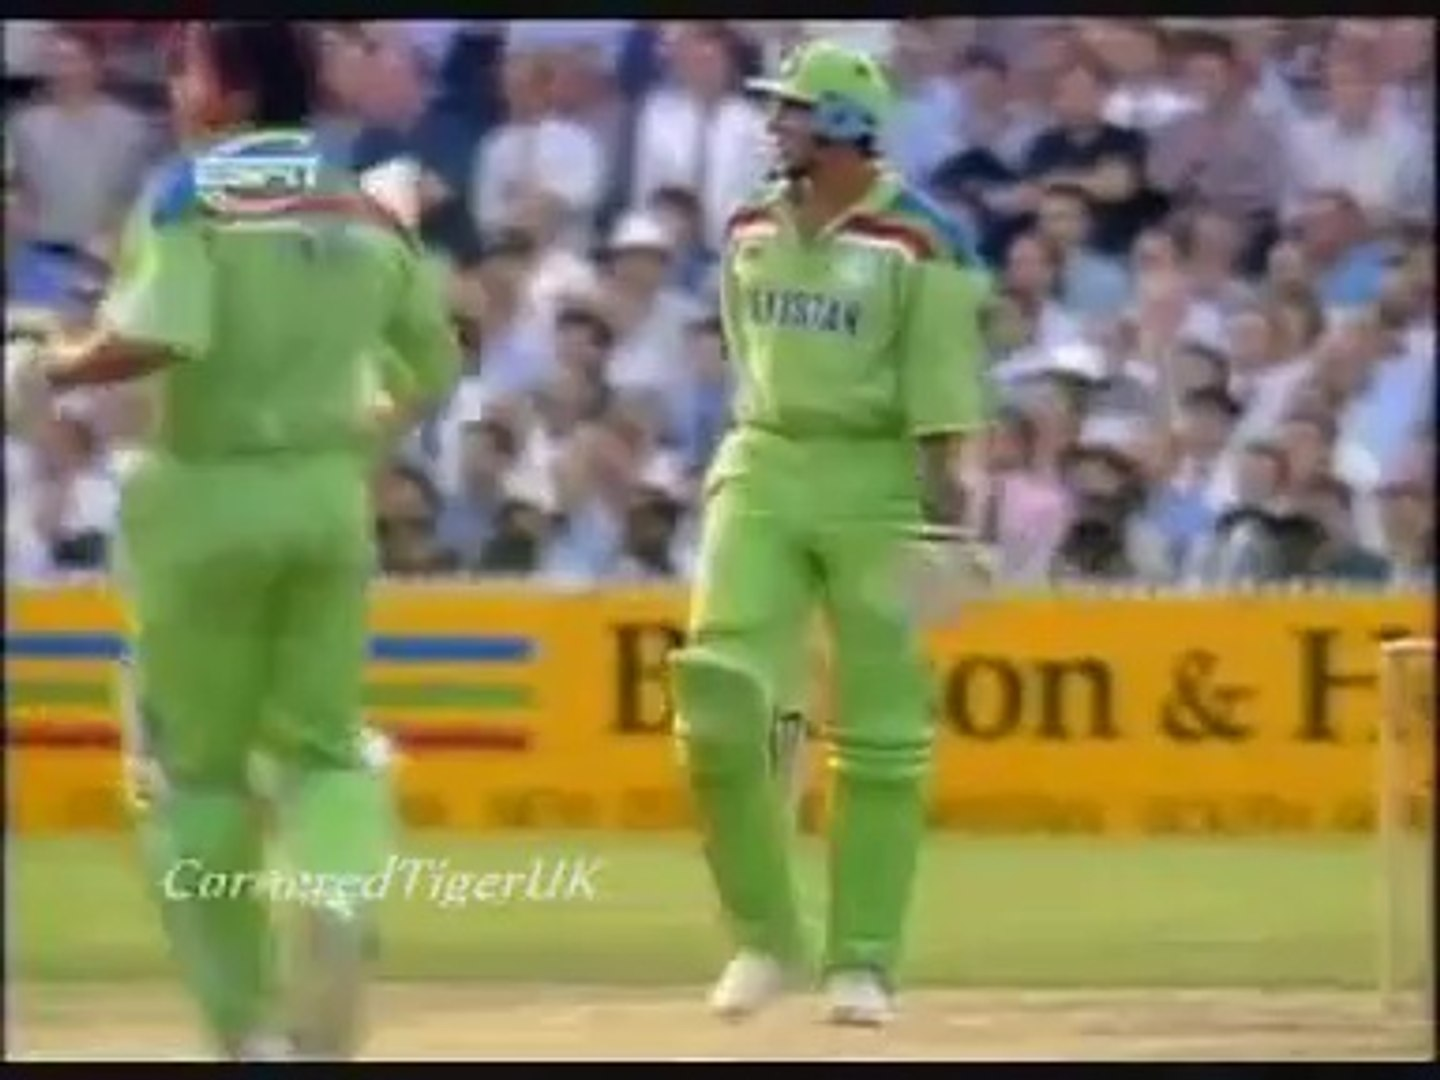 March, 25 1992) - Imran Khan's Cornered Tigers Win The 1992 World Cup